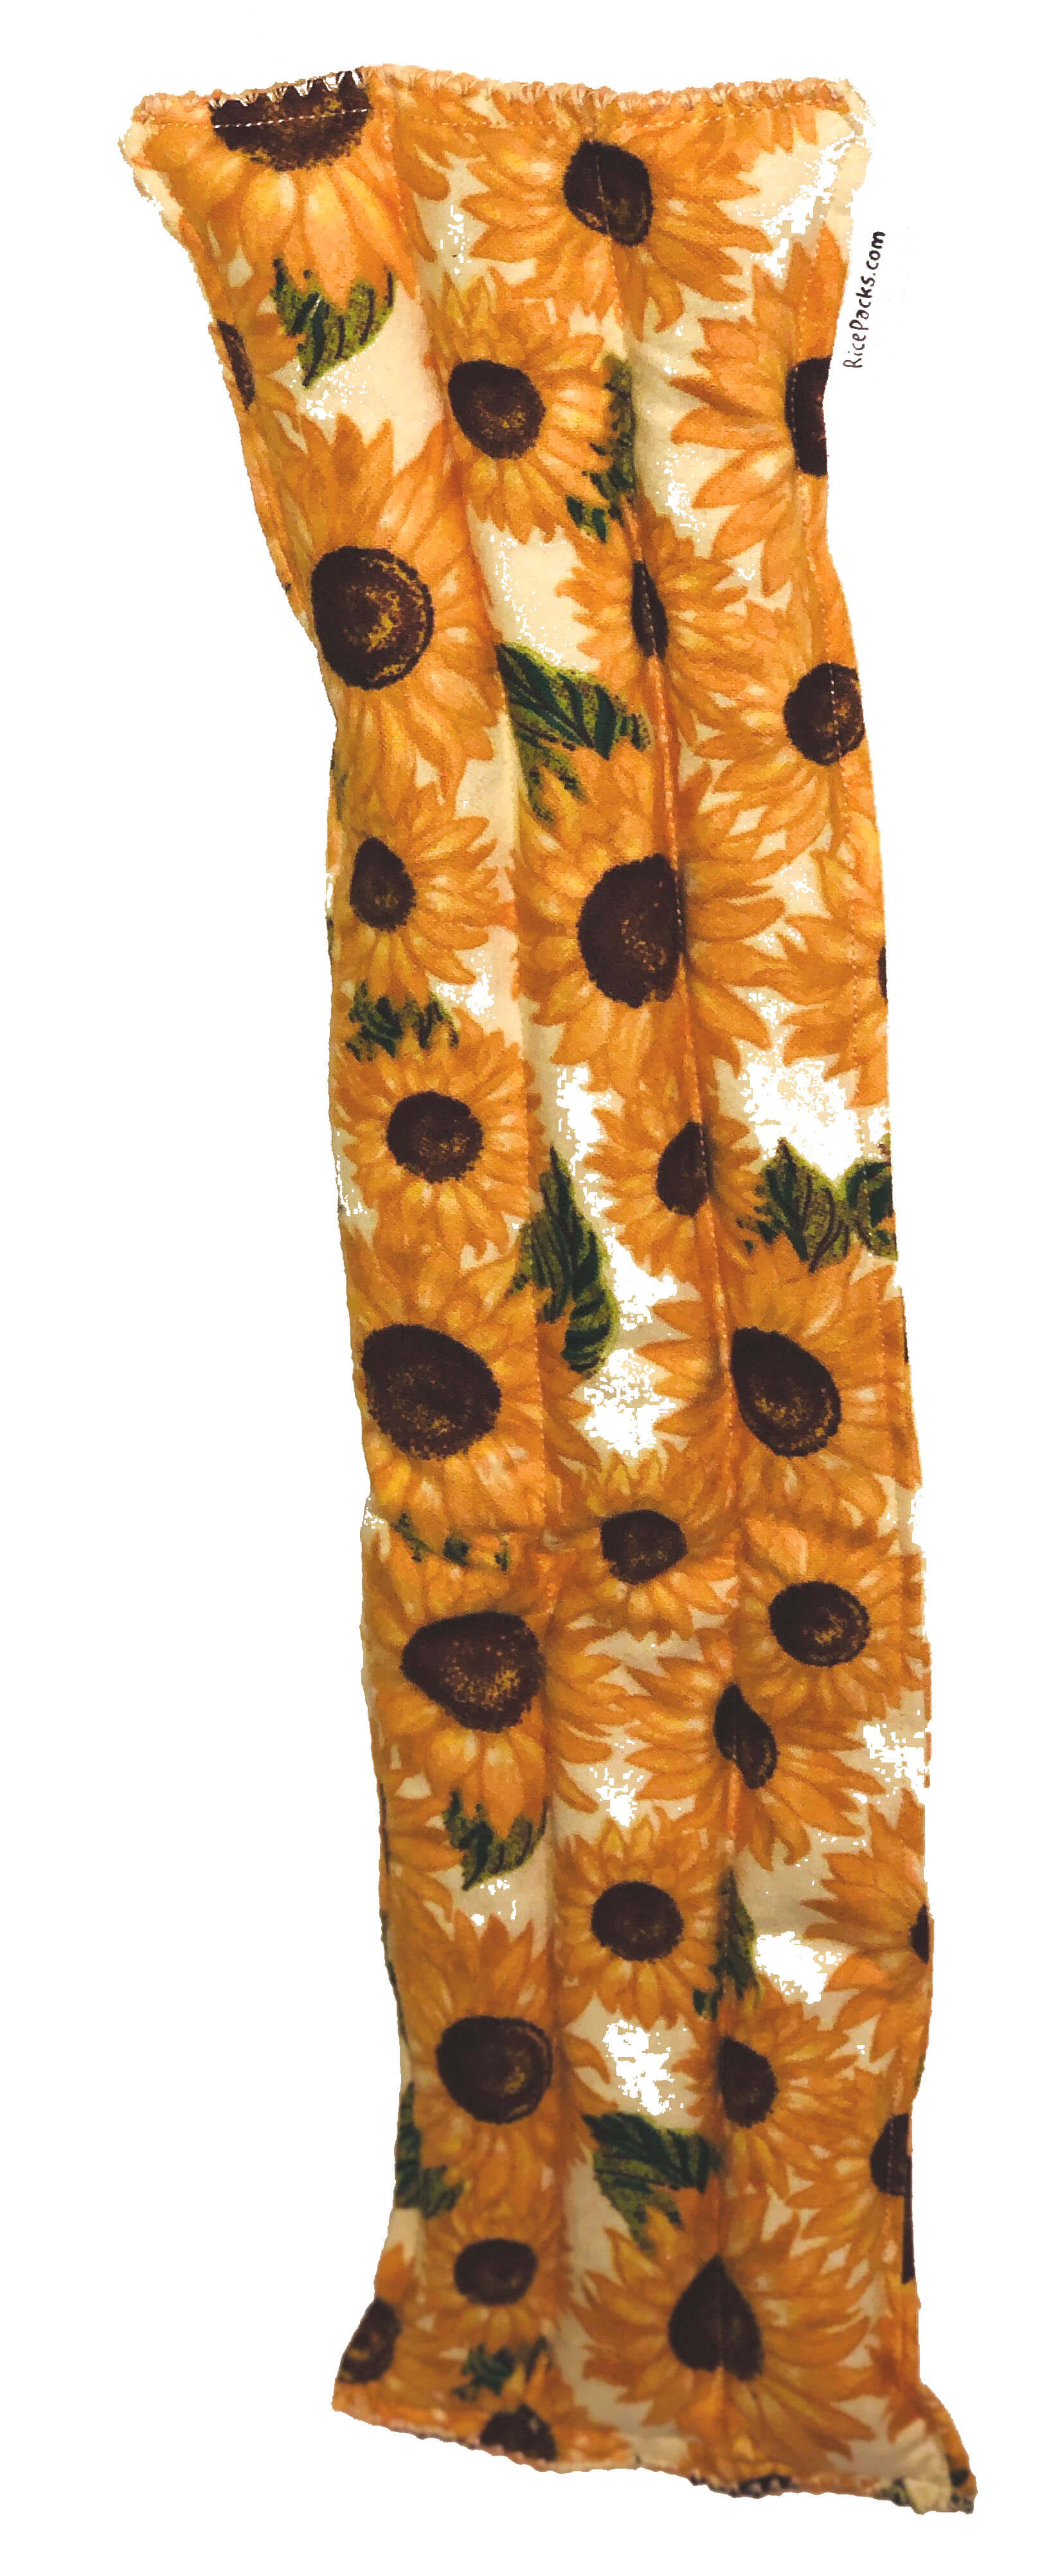 Sunflower Hot-Cold Packs 44 Scents to Choose From Reusable Neck Ouchee Heat Packs